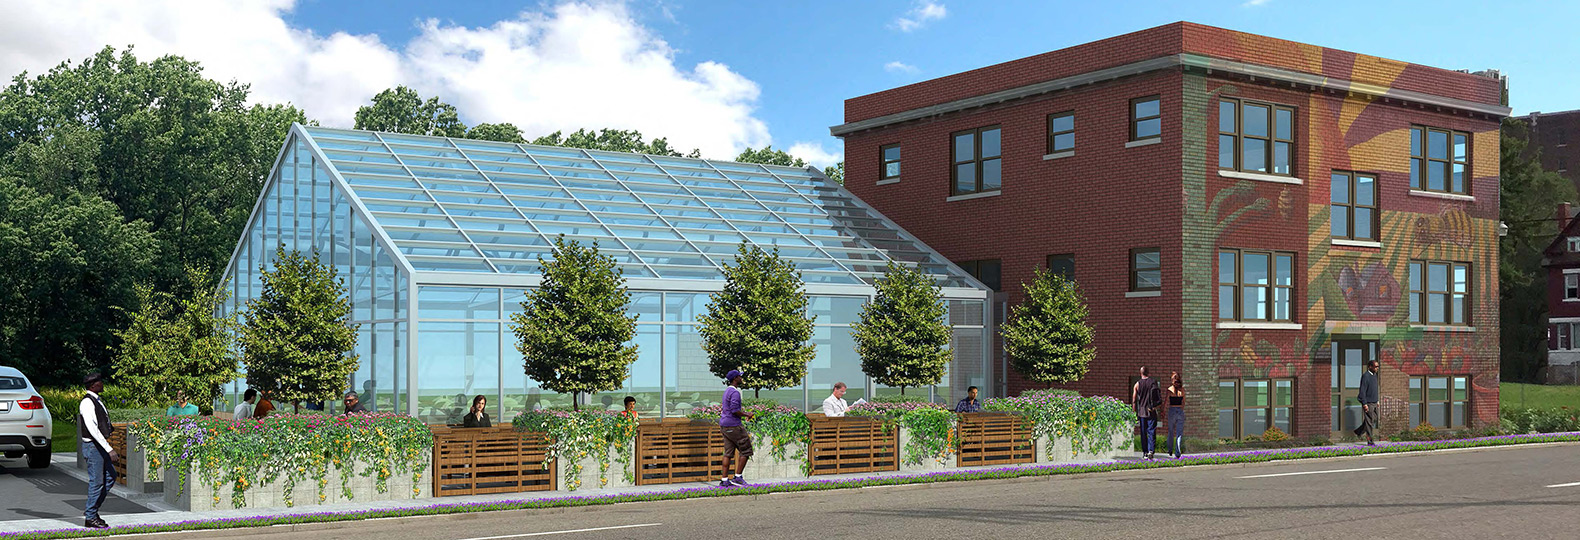 America's first urban 'agrihood' feeds 2,000 households for free